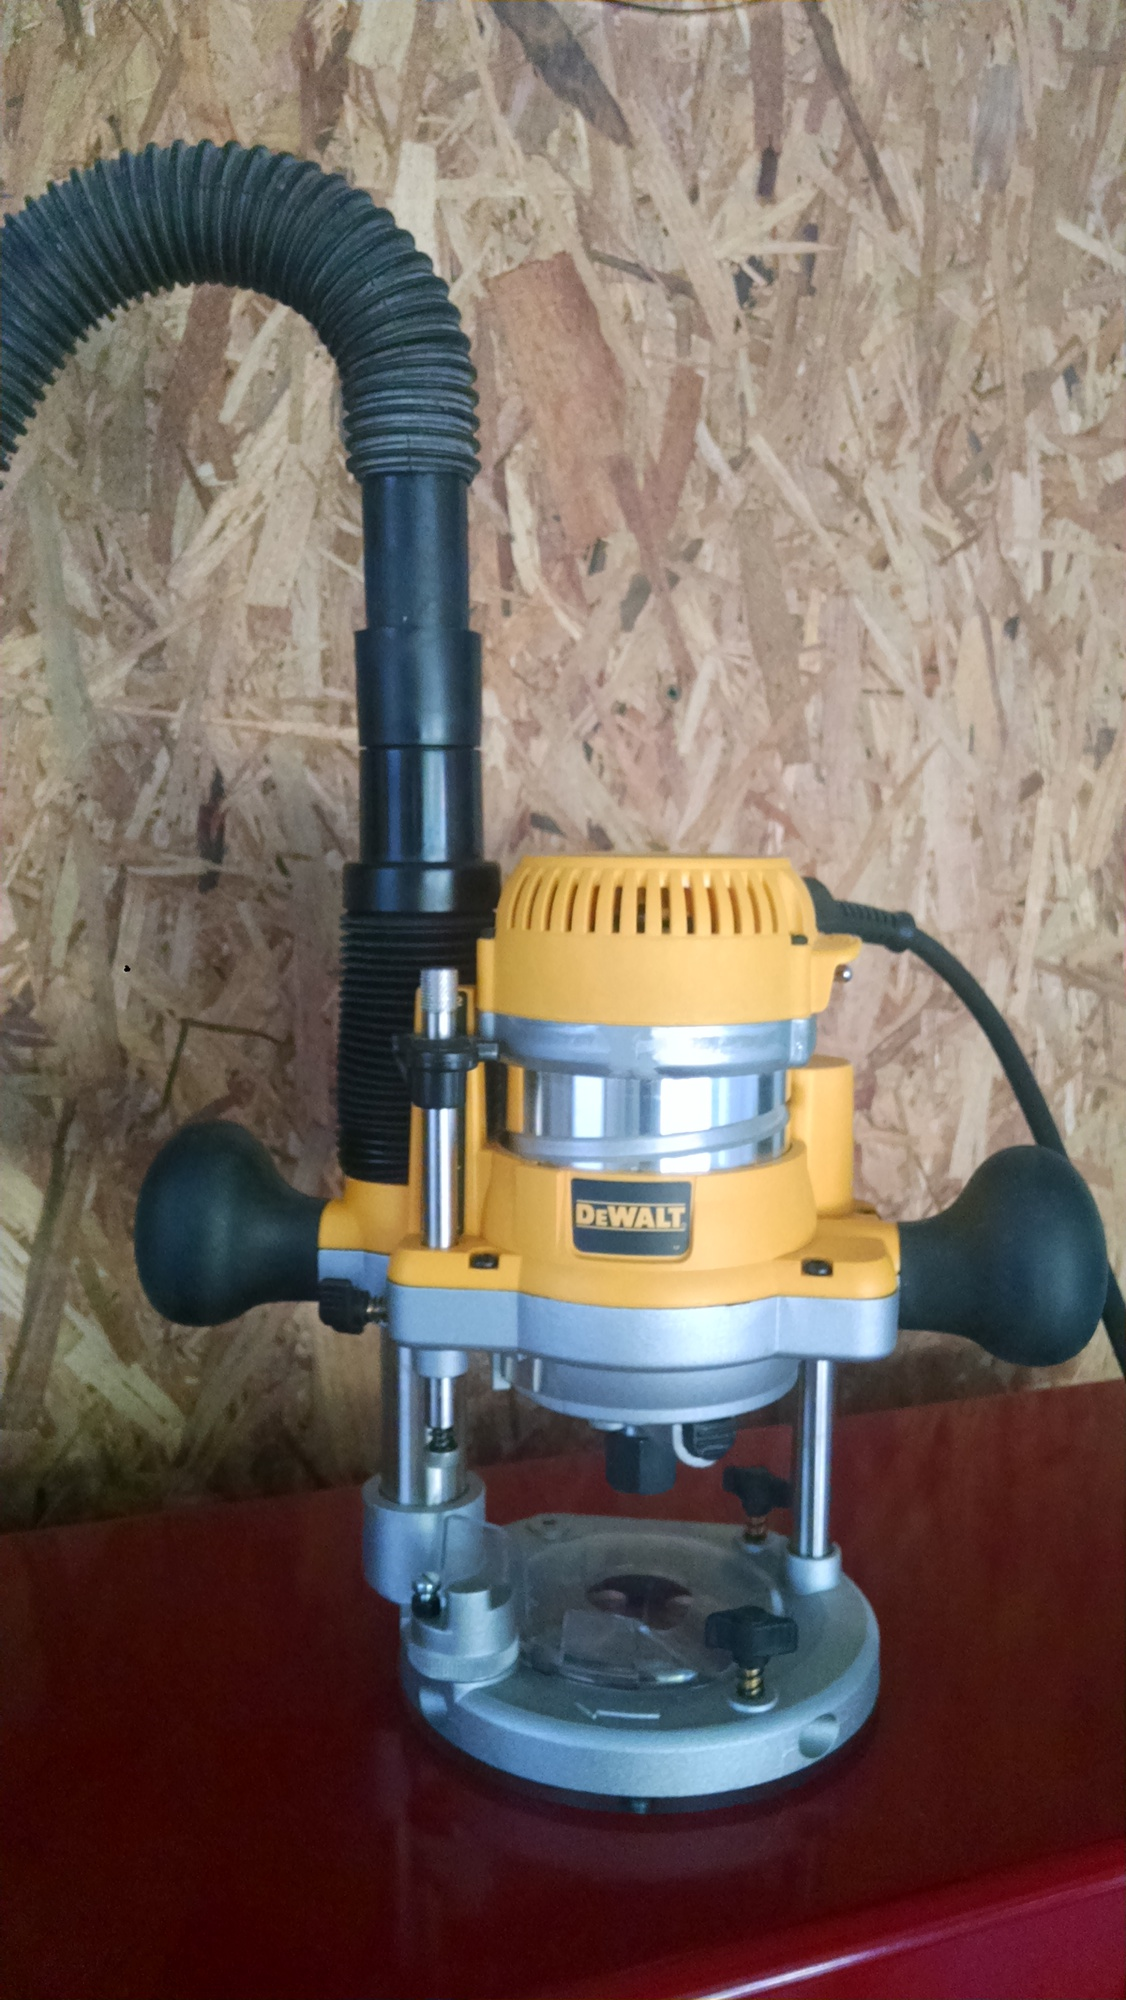 I need a shop vac hose for a dewalt dw618 router page 3 router click image for larger version name img20150613191209072g views 481 size 5982 greentooth Image collections